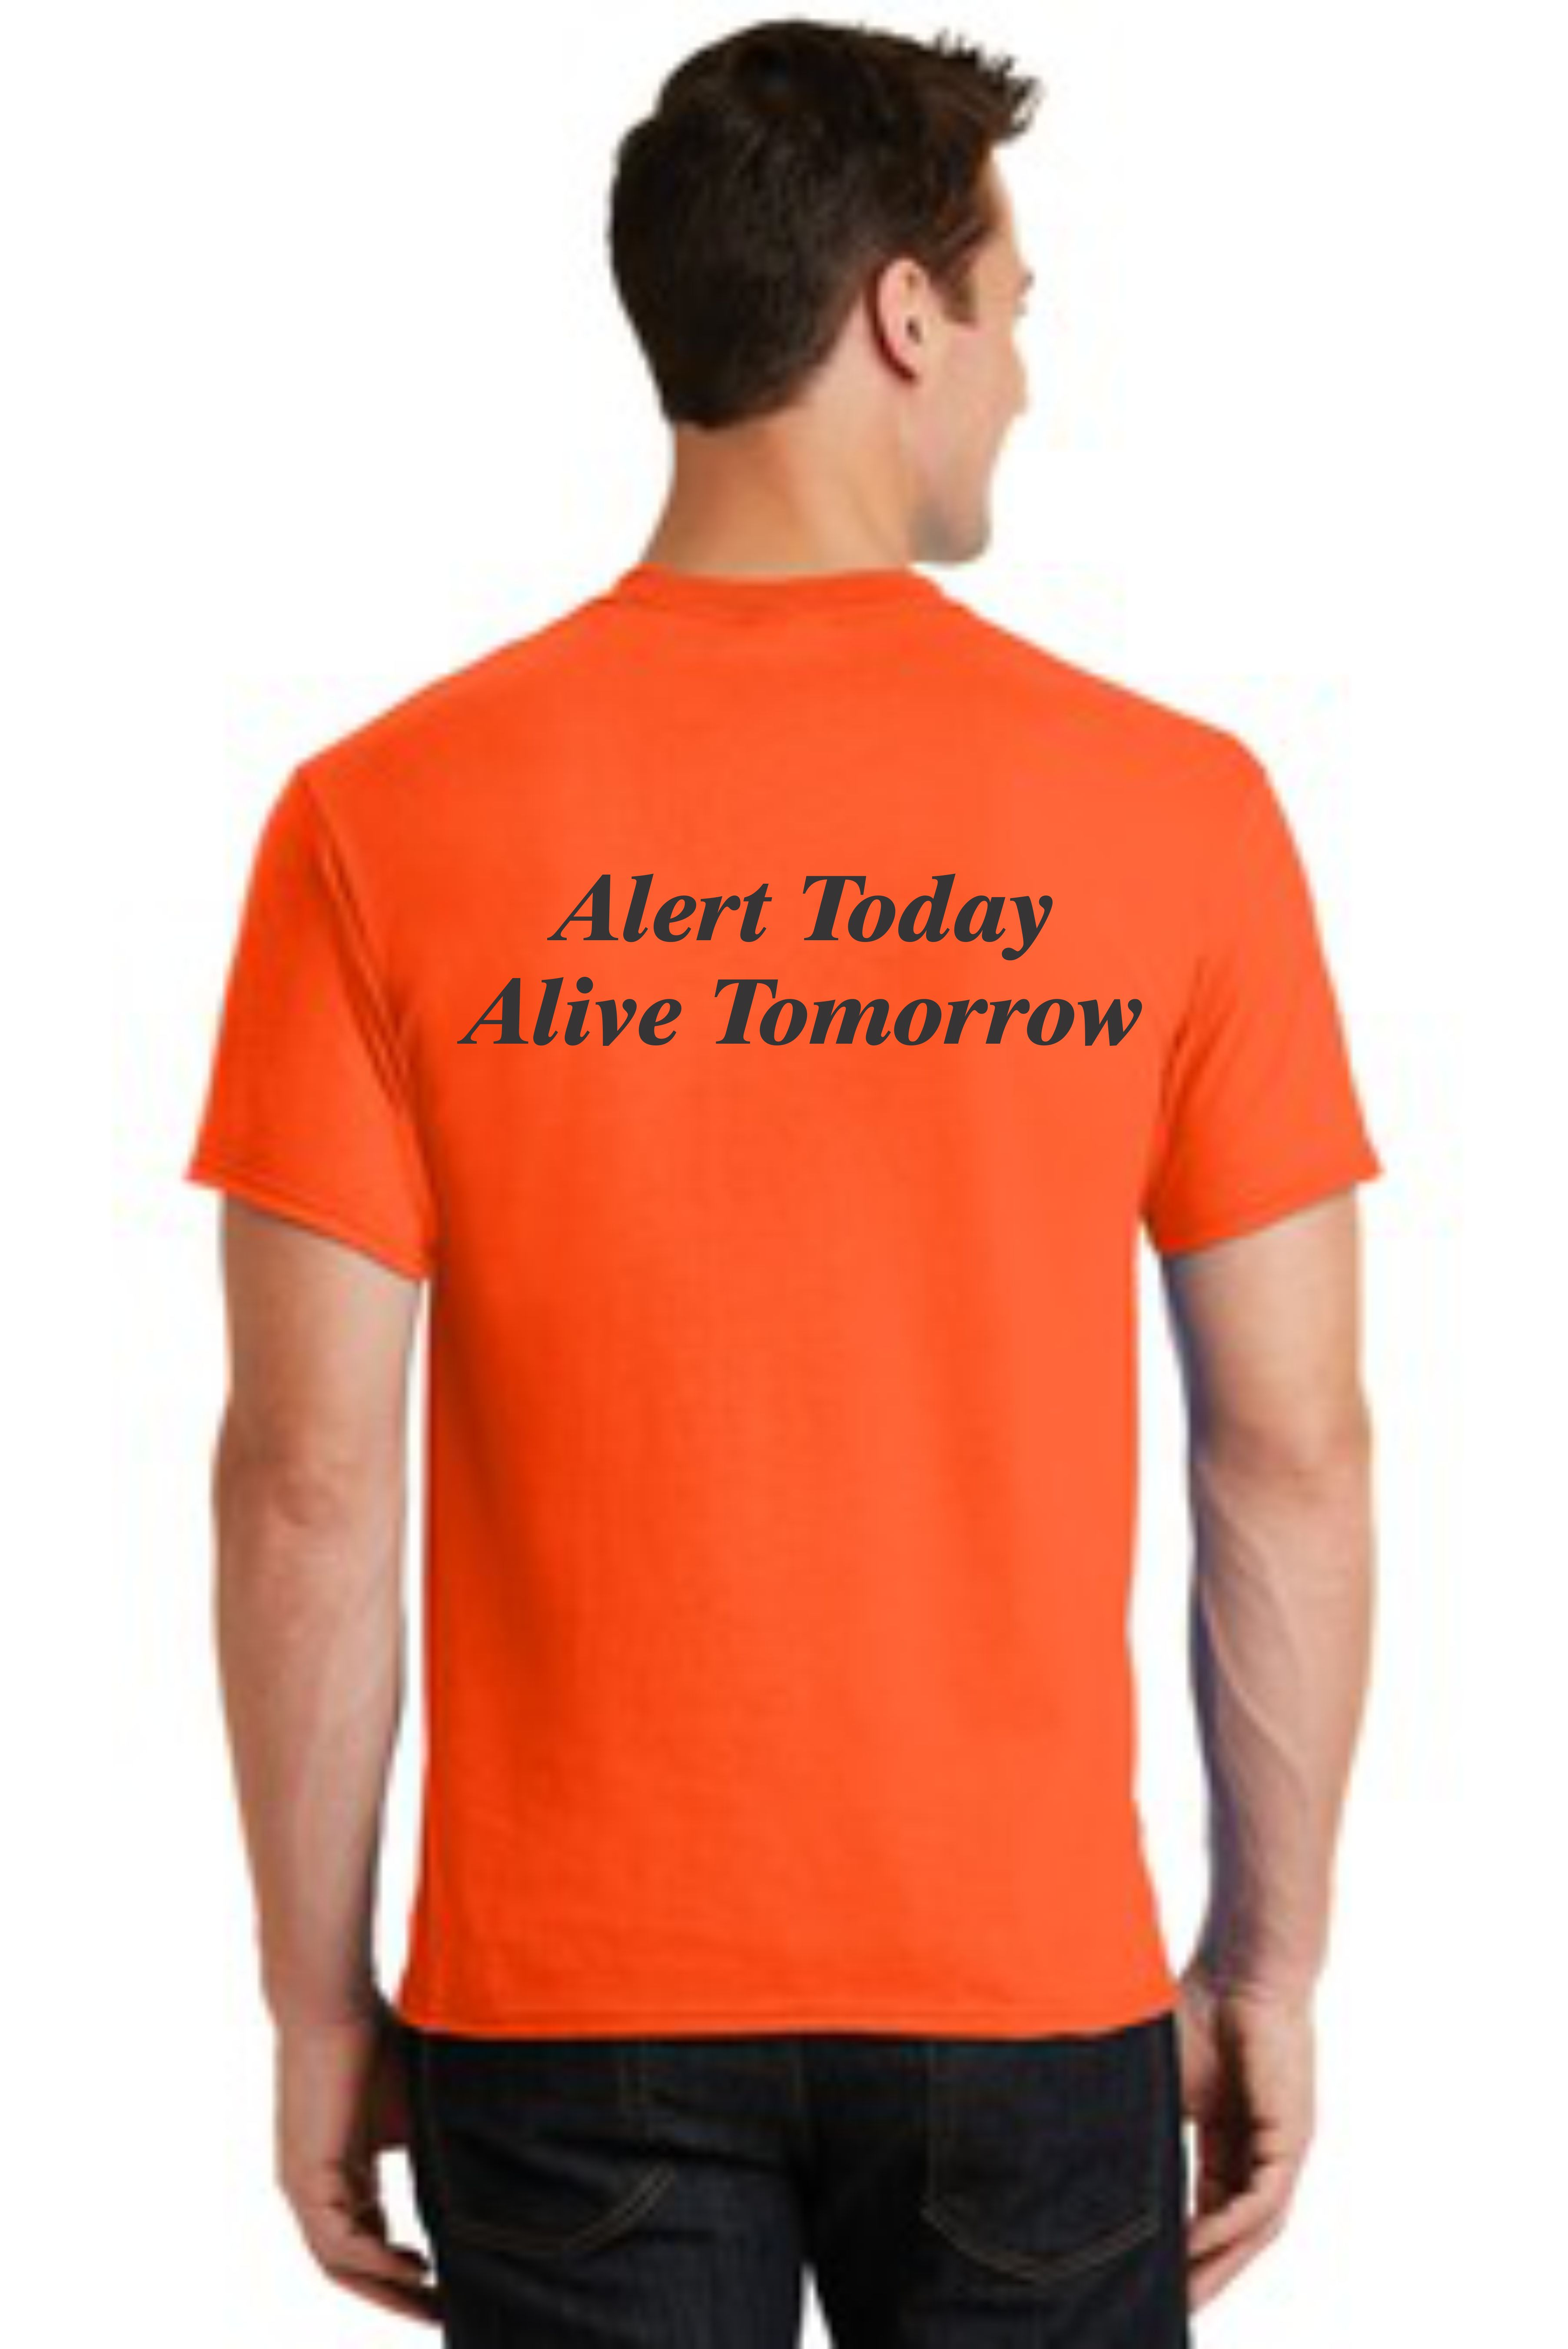 SAFETY T-SHIRT -- ALERT TODAY ALIVE TOMORROW